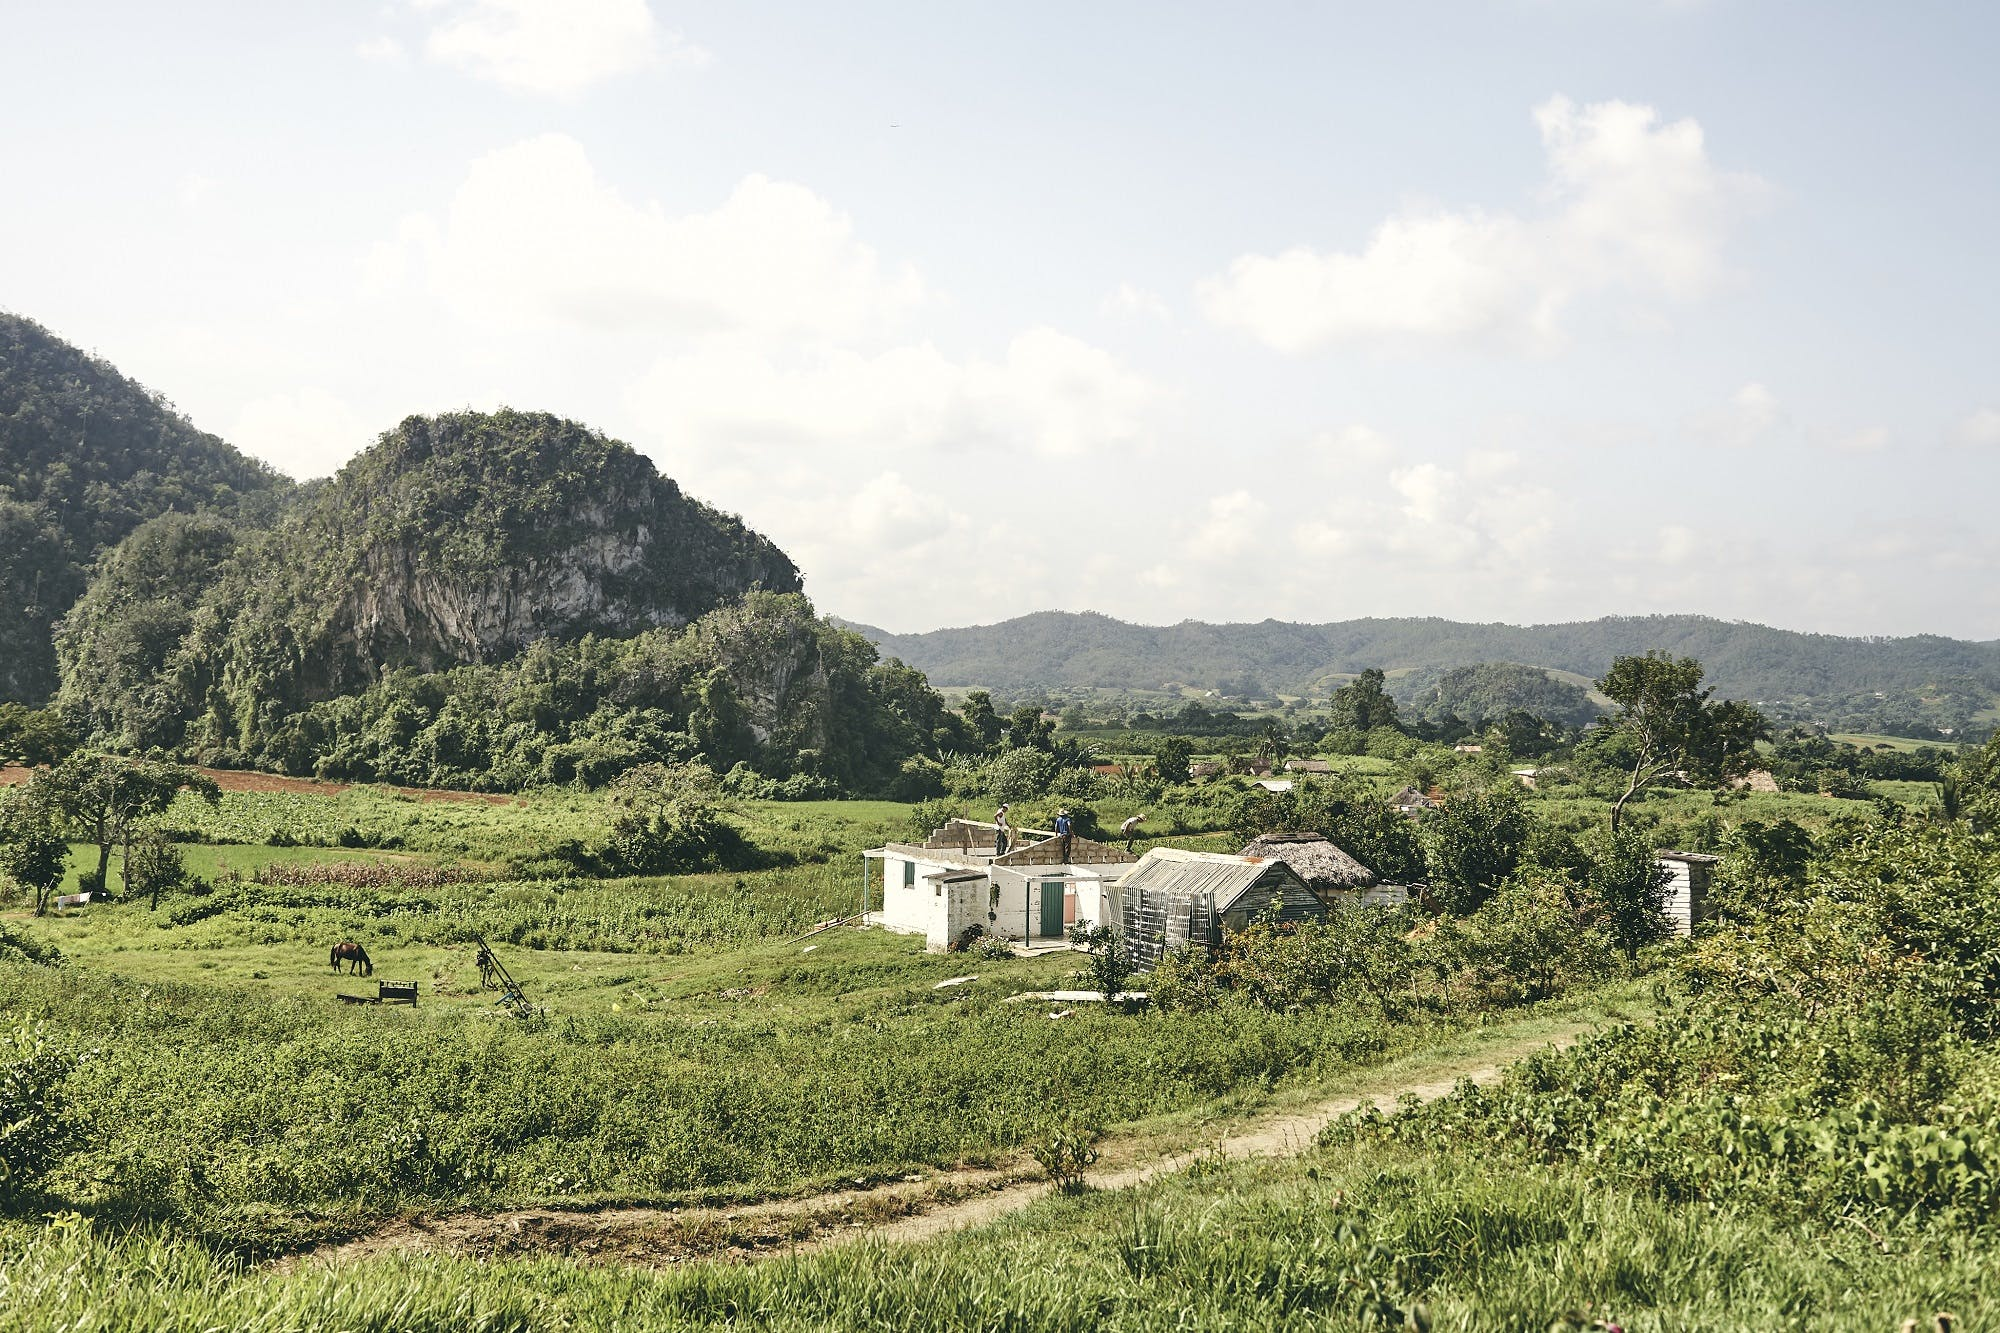 Add Pinar del Río to your Cuba itinerary